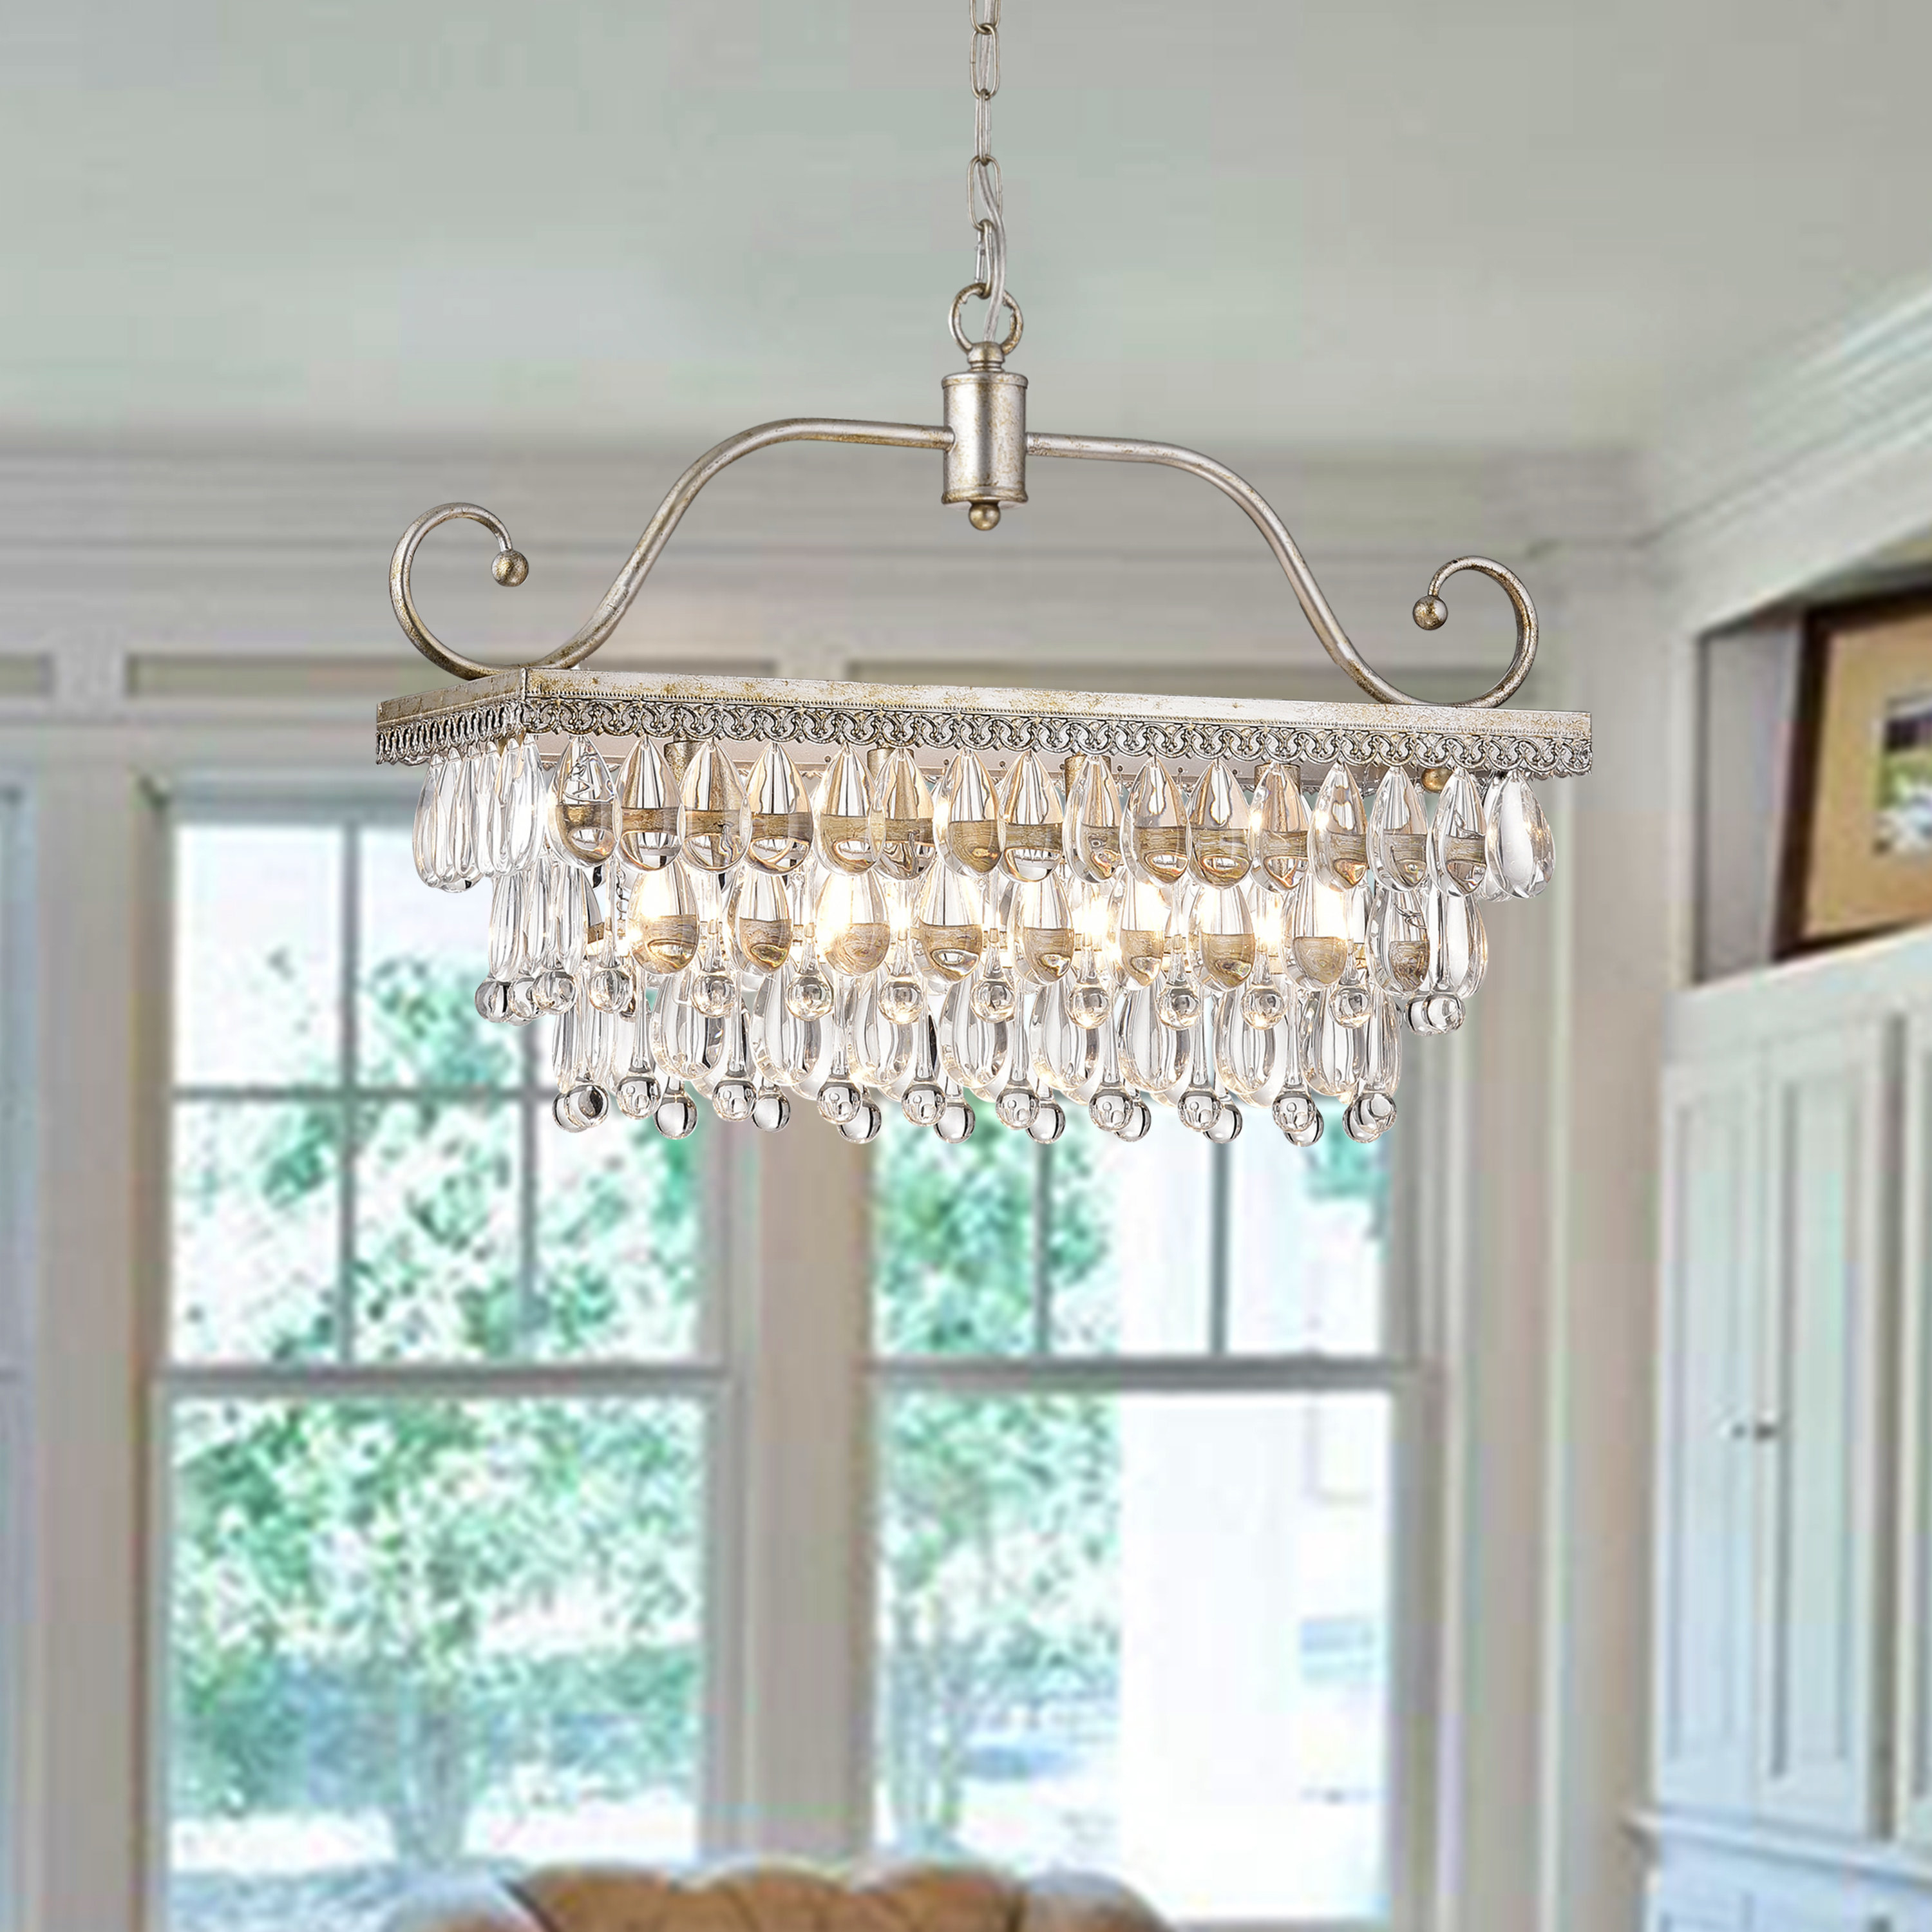 Von 4 Light Crystal Chandeliers Within Widely Used Gerhart 4 Light Crystal Chandelier (View 25 of 25)